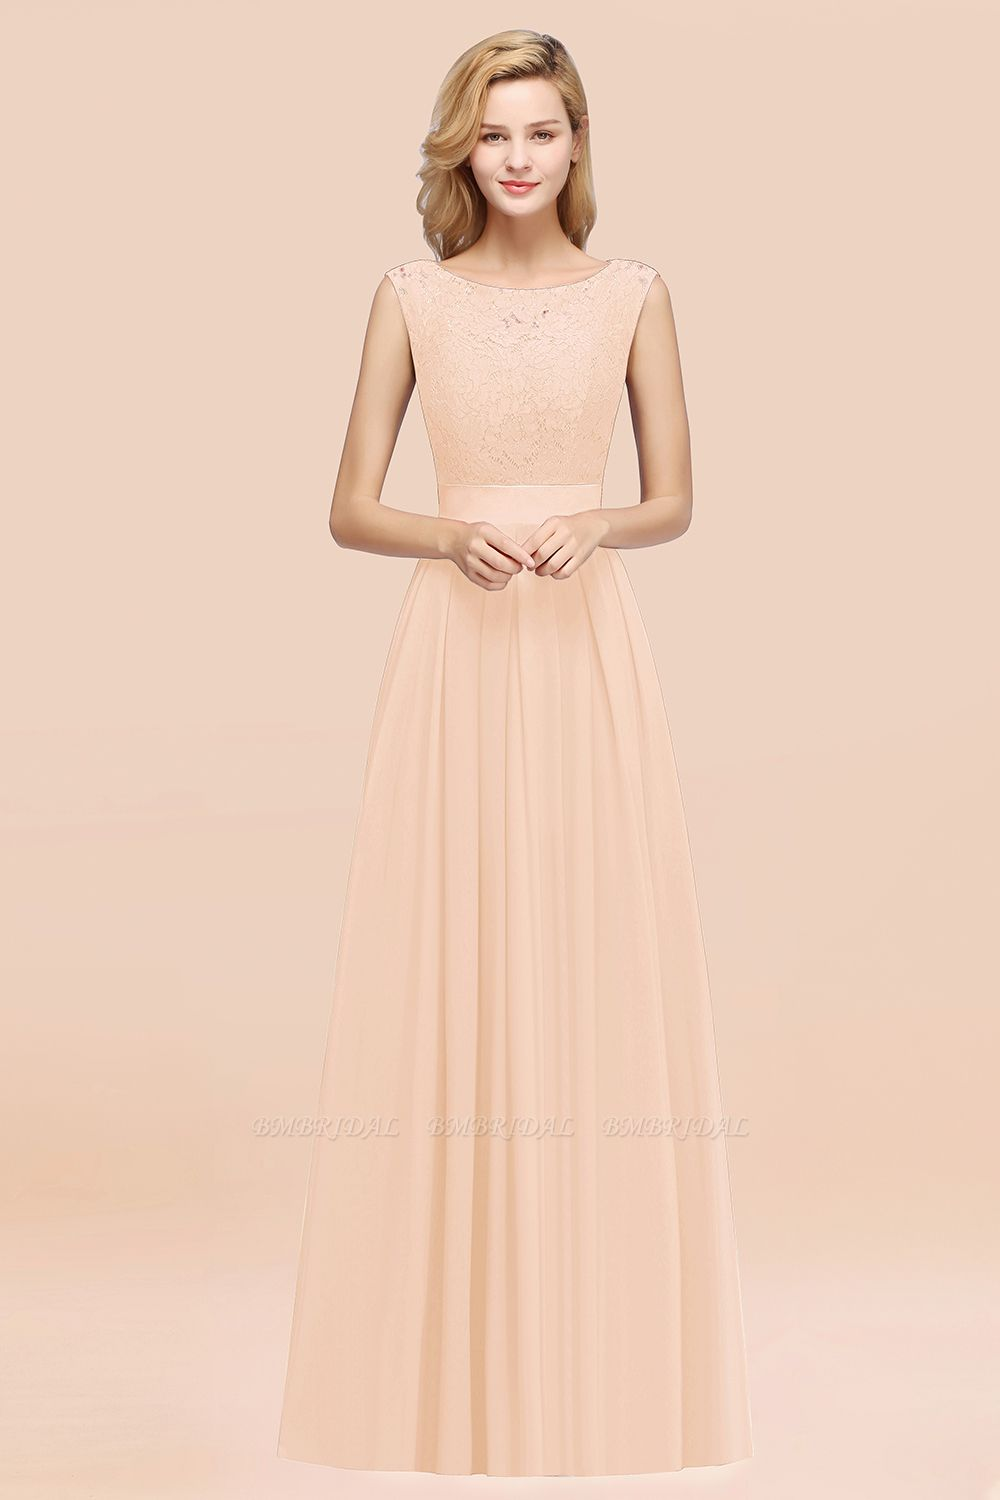 Try at Home Sample Bridesmaid Dress Lilac Pearl Pink Dusty Sage